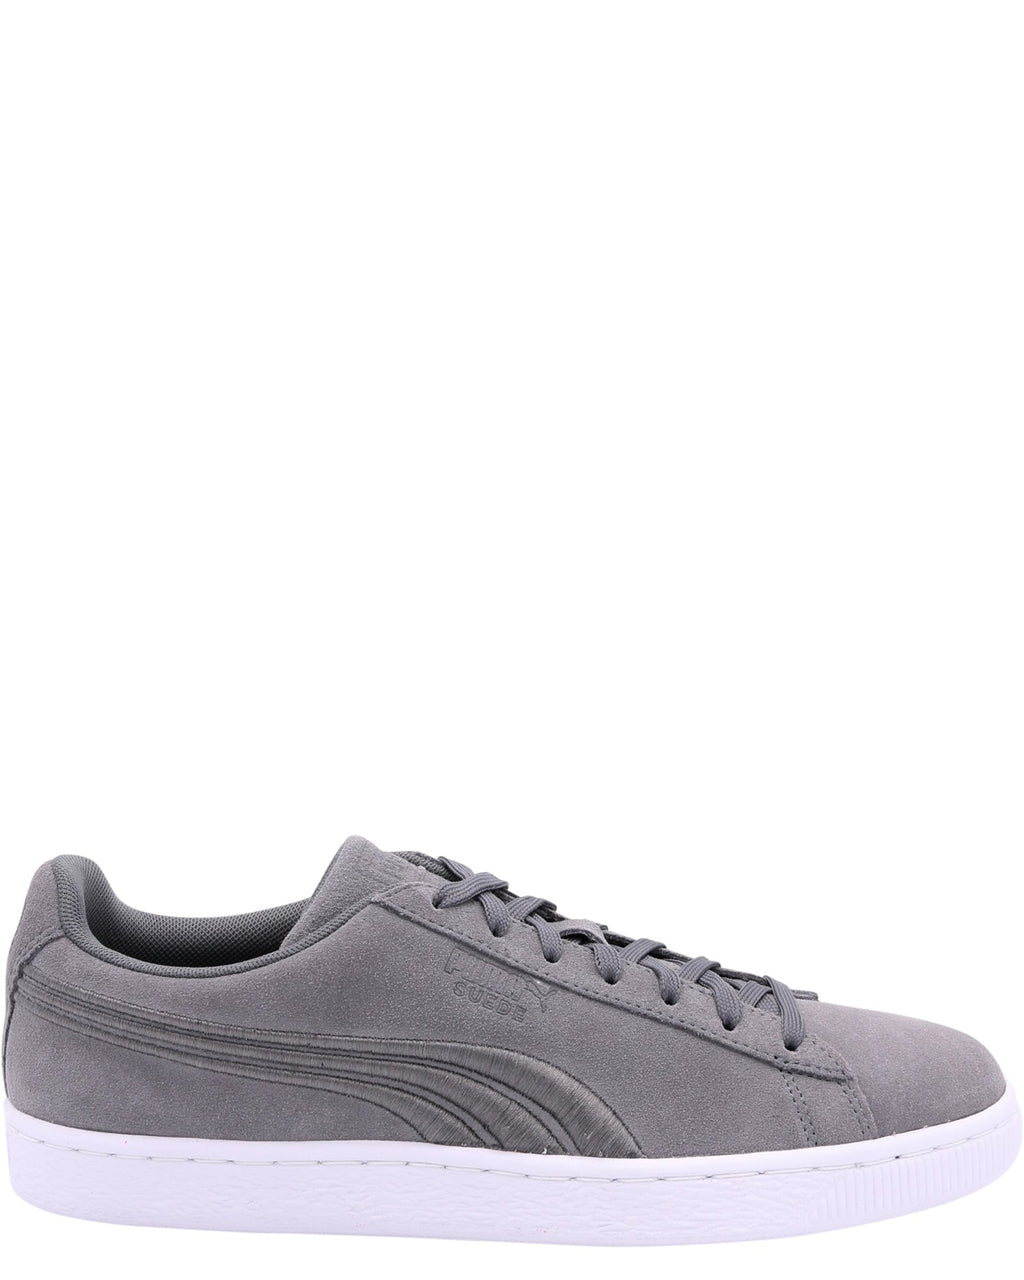 Puma - Men's Suede Classic Badge Fashion Sneakers - V.I.M. - 1